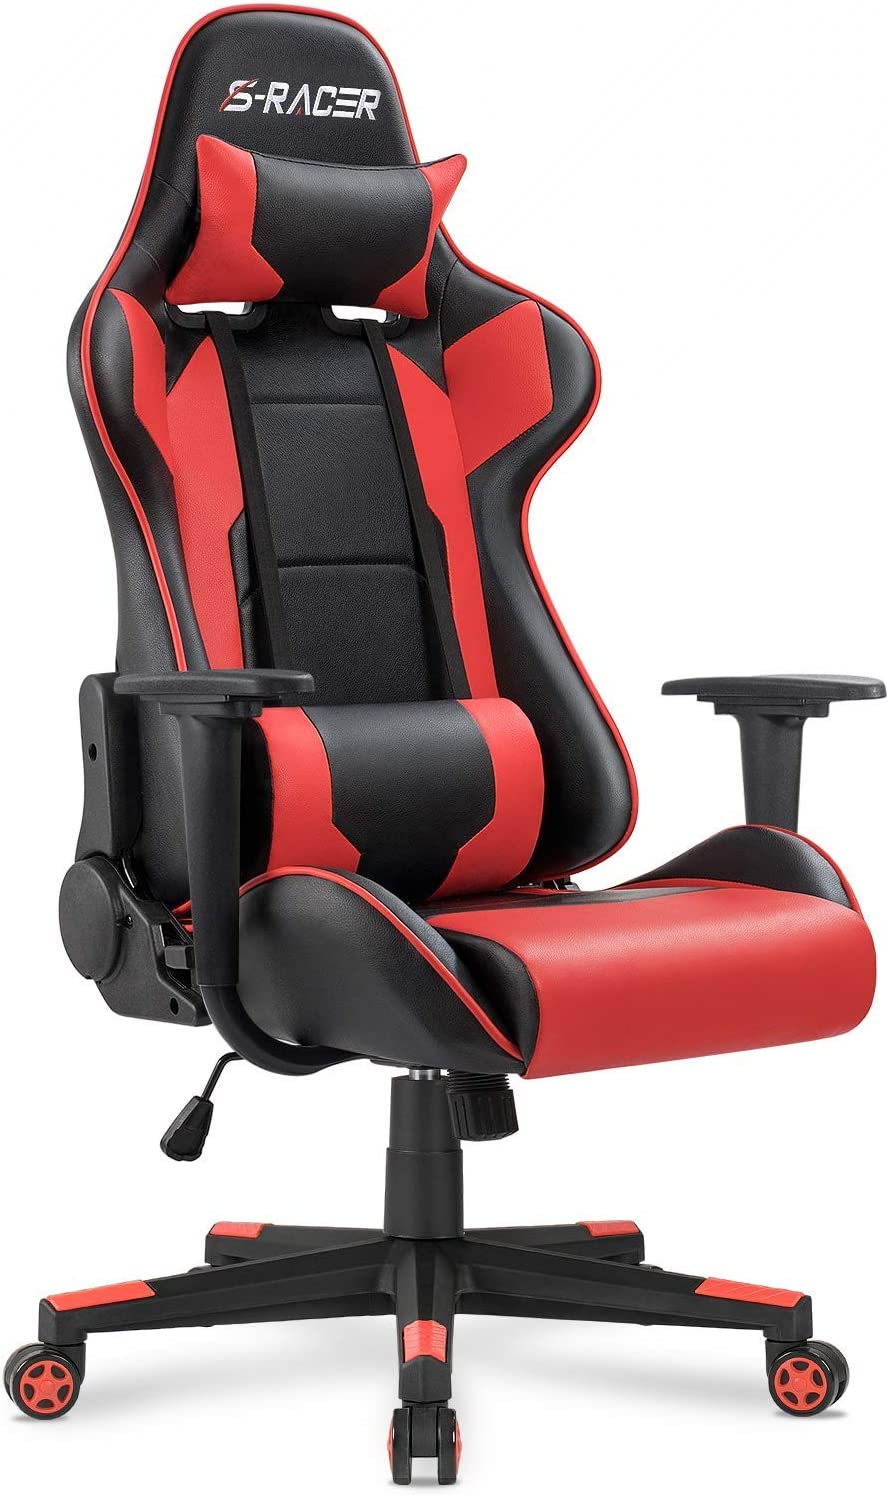 7154WnYCB0L. AC SL1500 - What Is The Best Gaming Chair For Short Person - ChairPicks